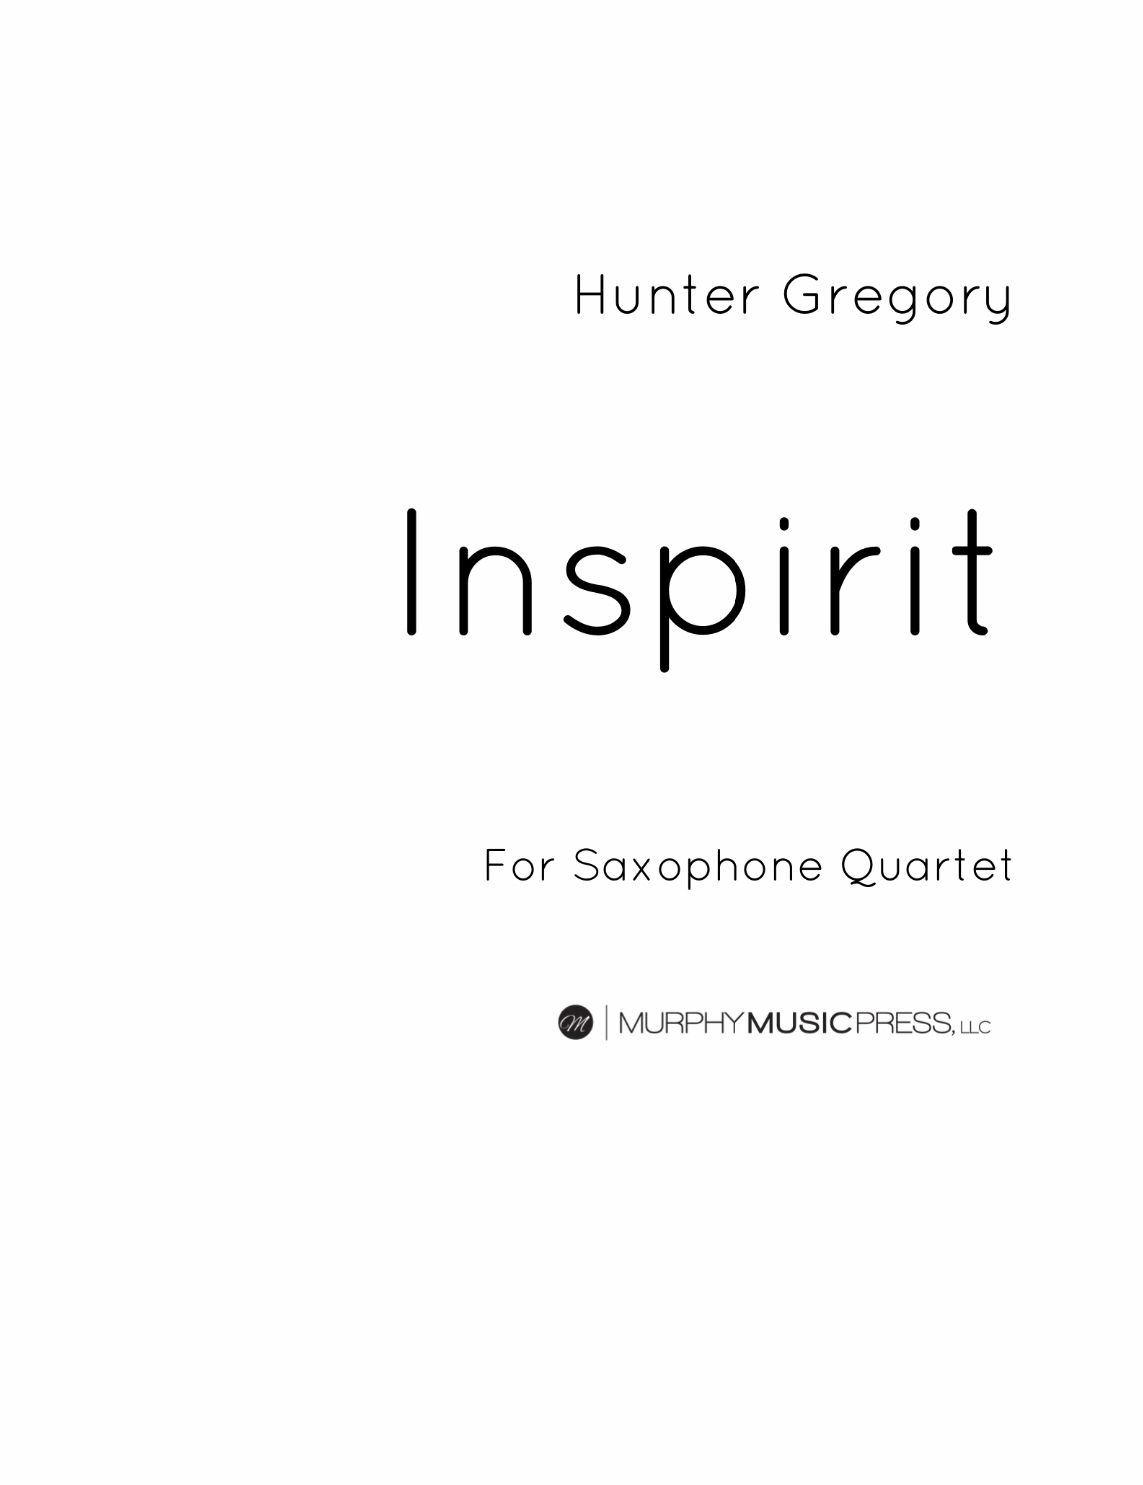 Inspirit by Hunter Gregory